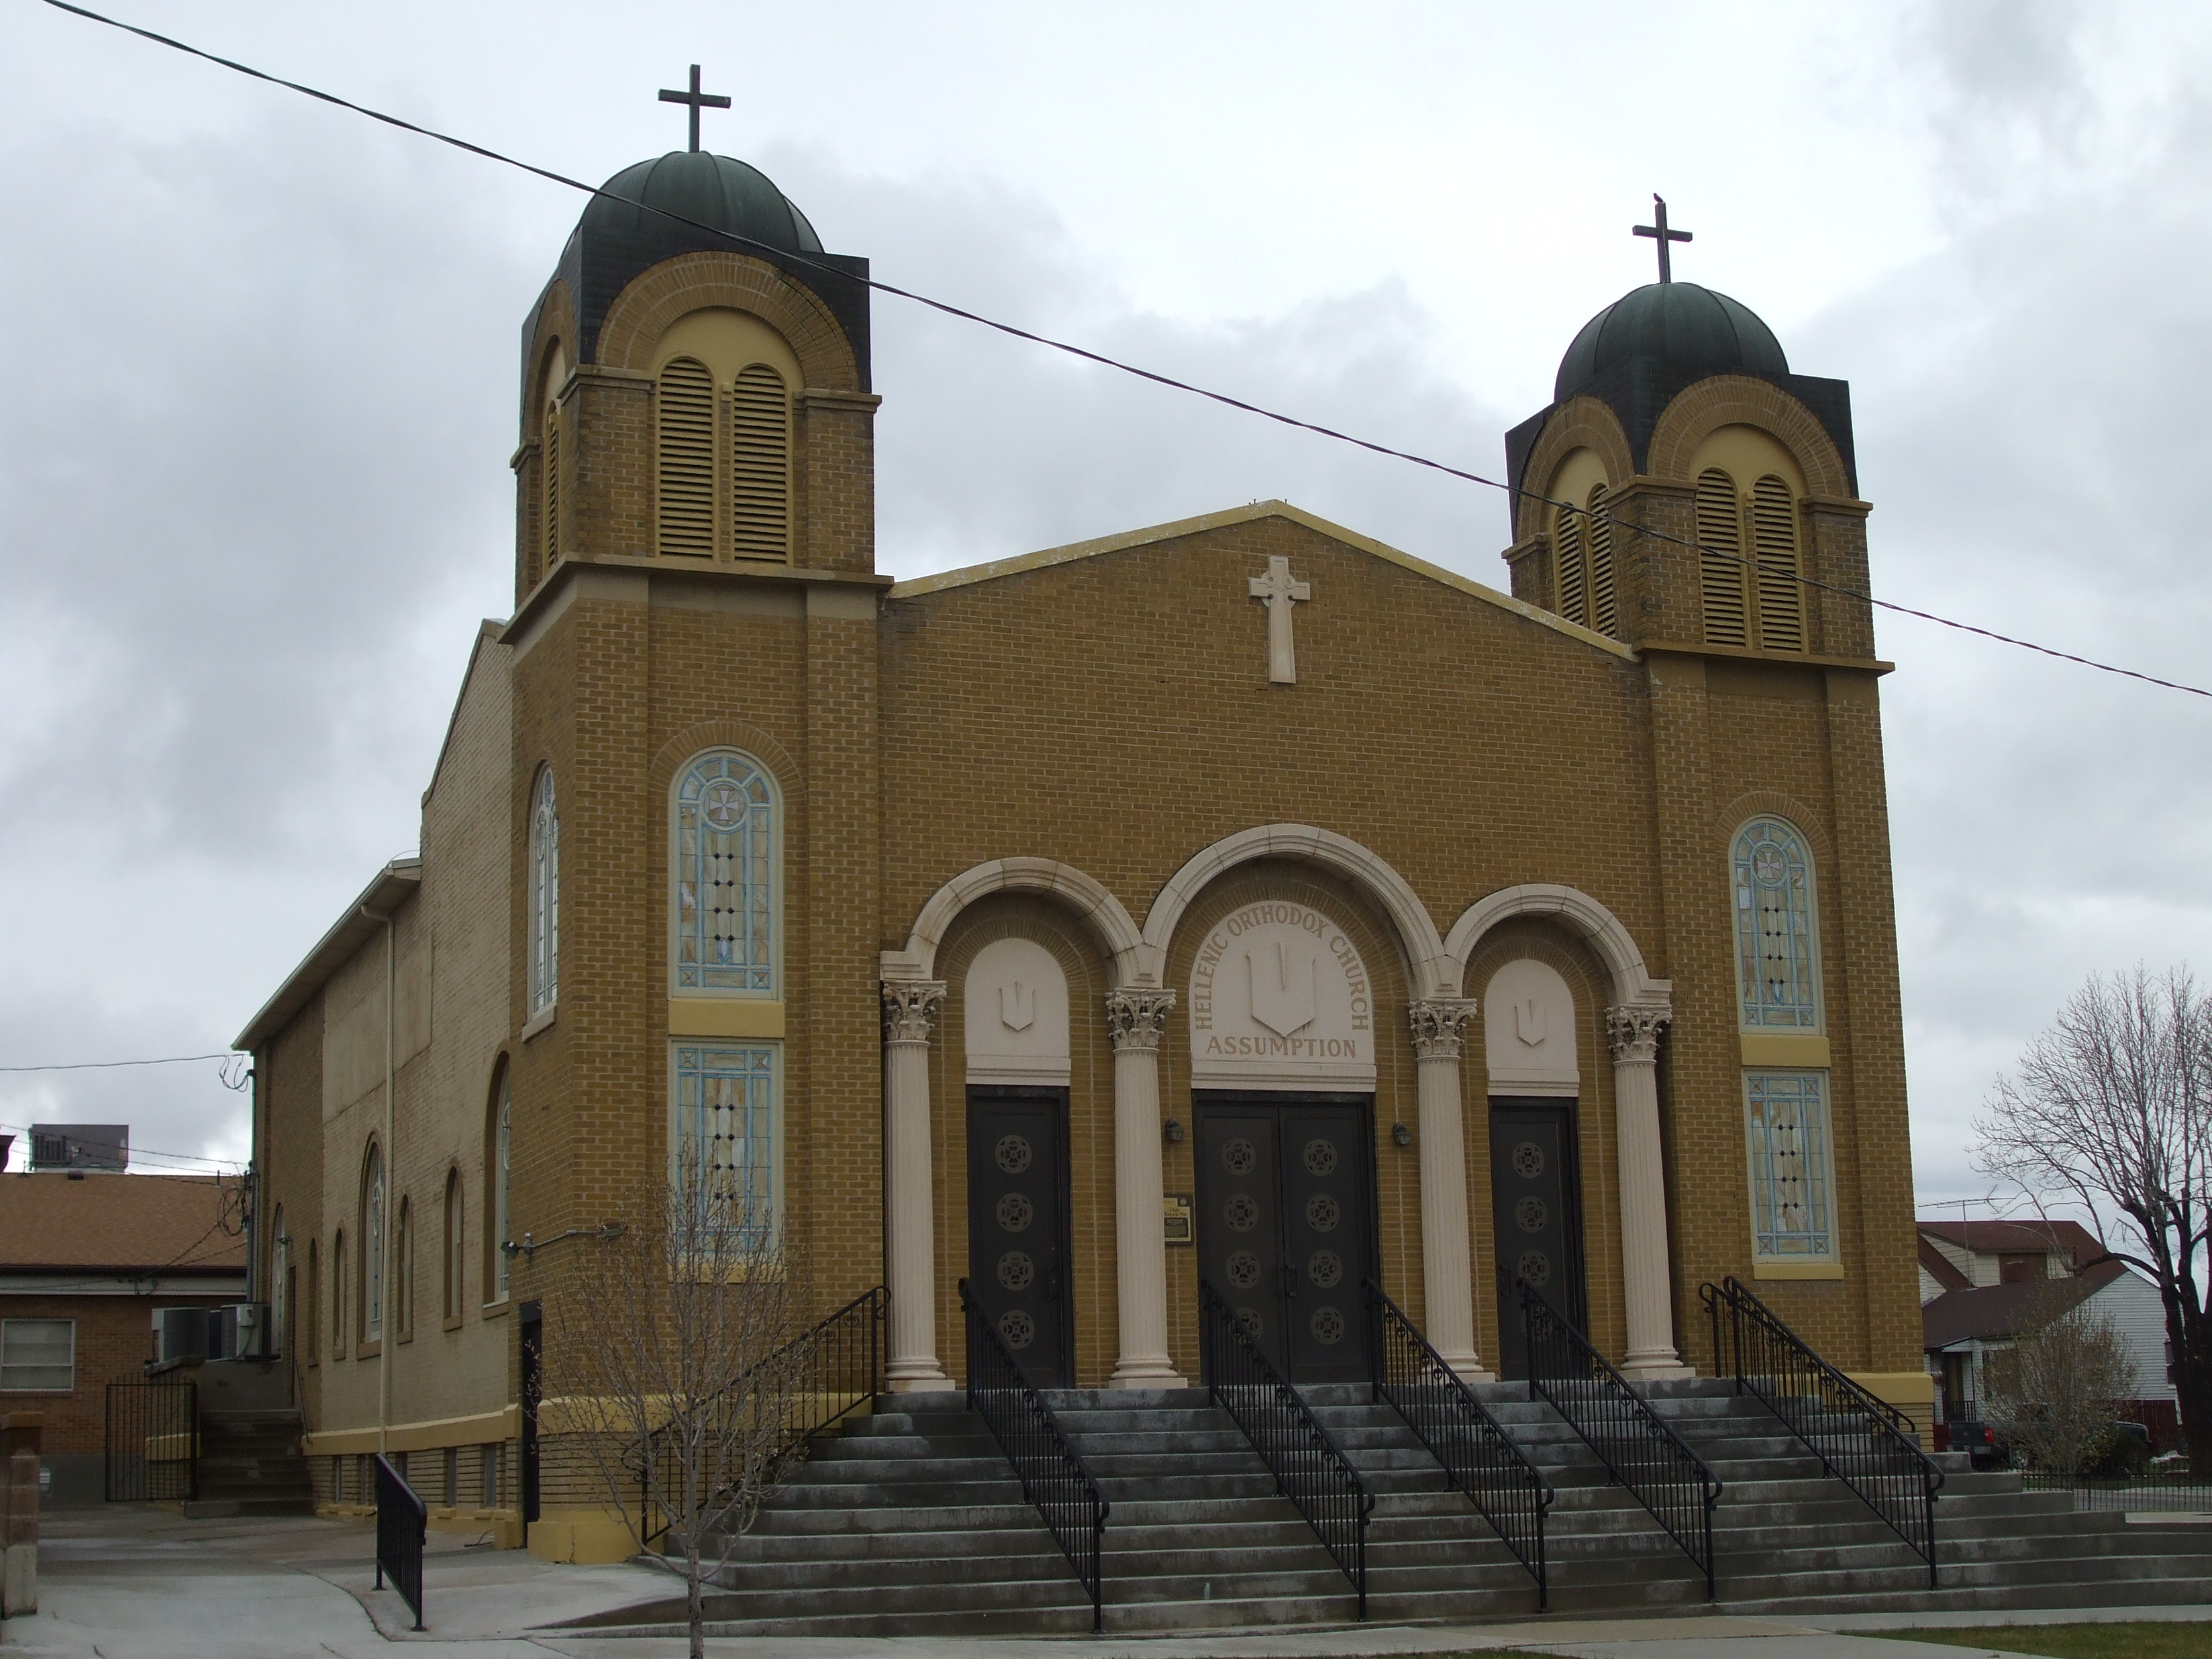 http://upload.wikimedia.org/wikipedia/commons/6/65/Orthodox_Church_Price_Utah.jpeg